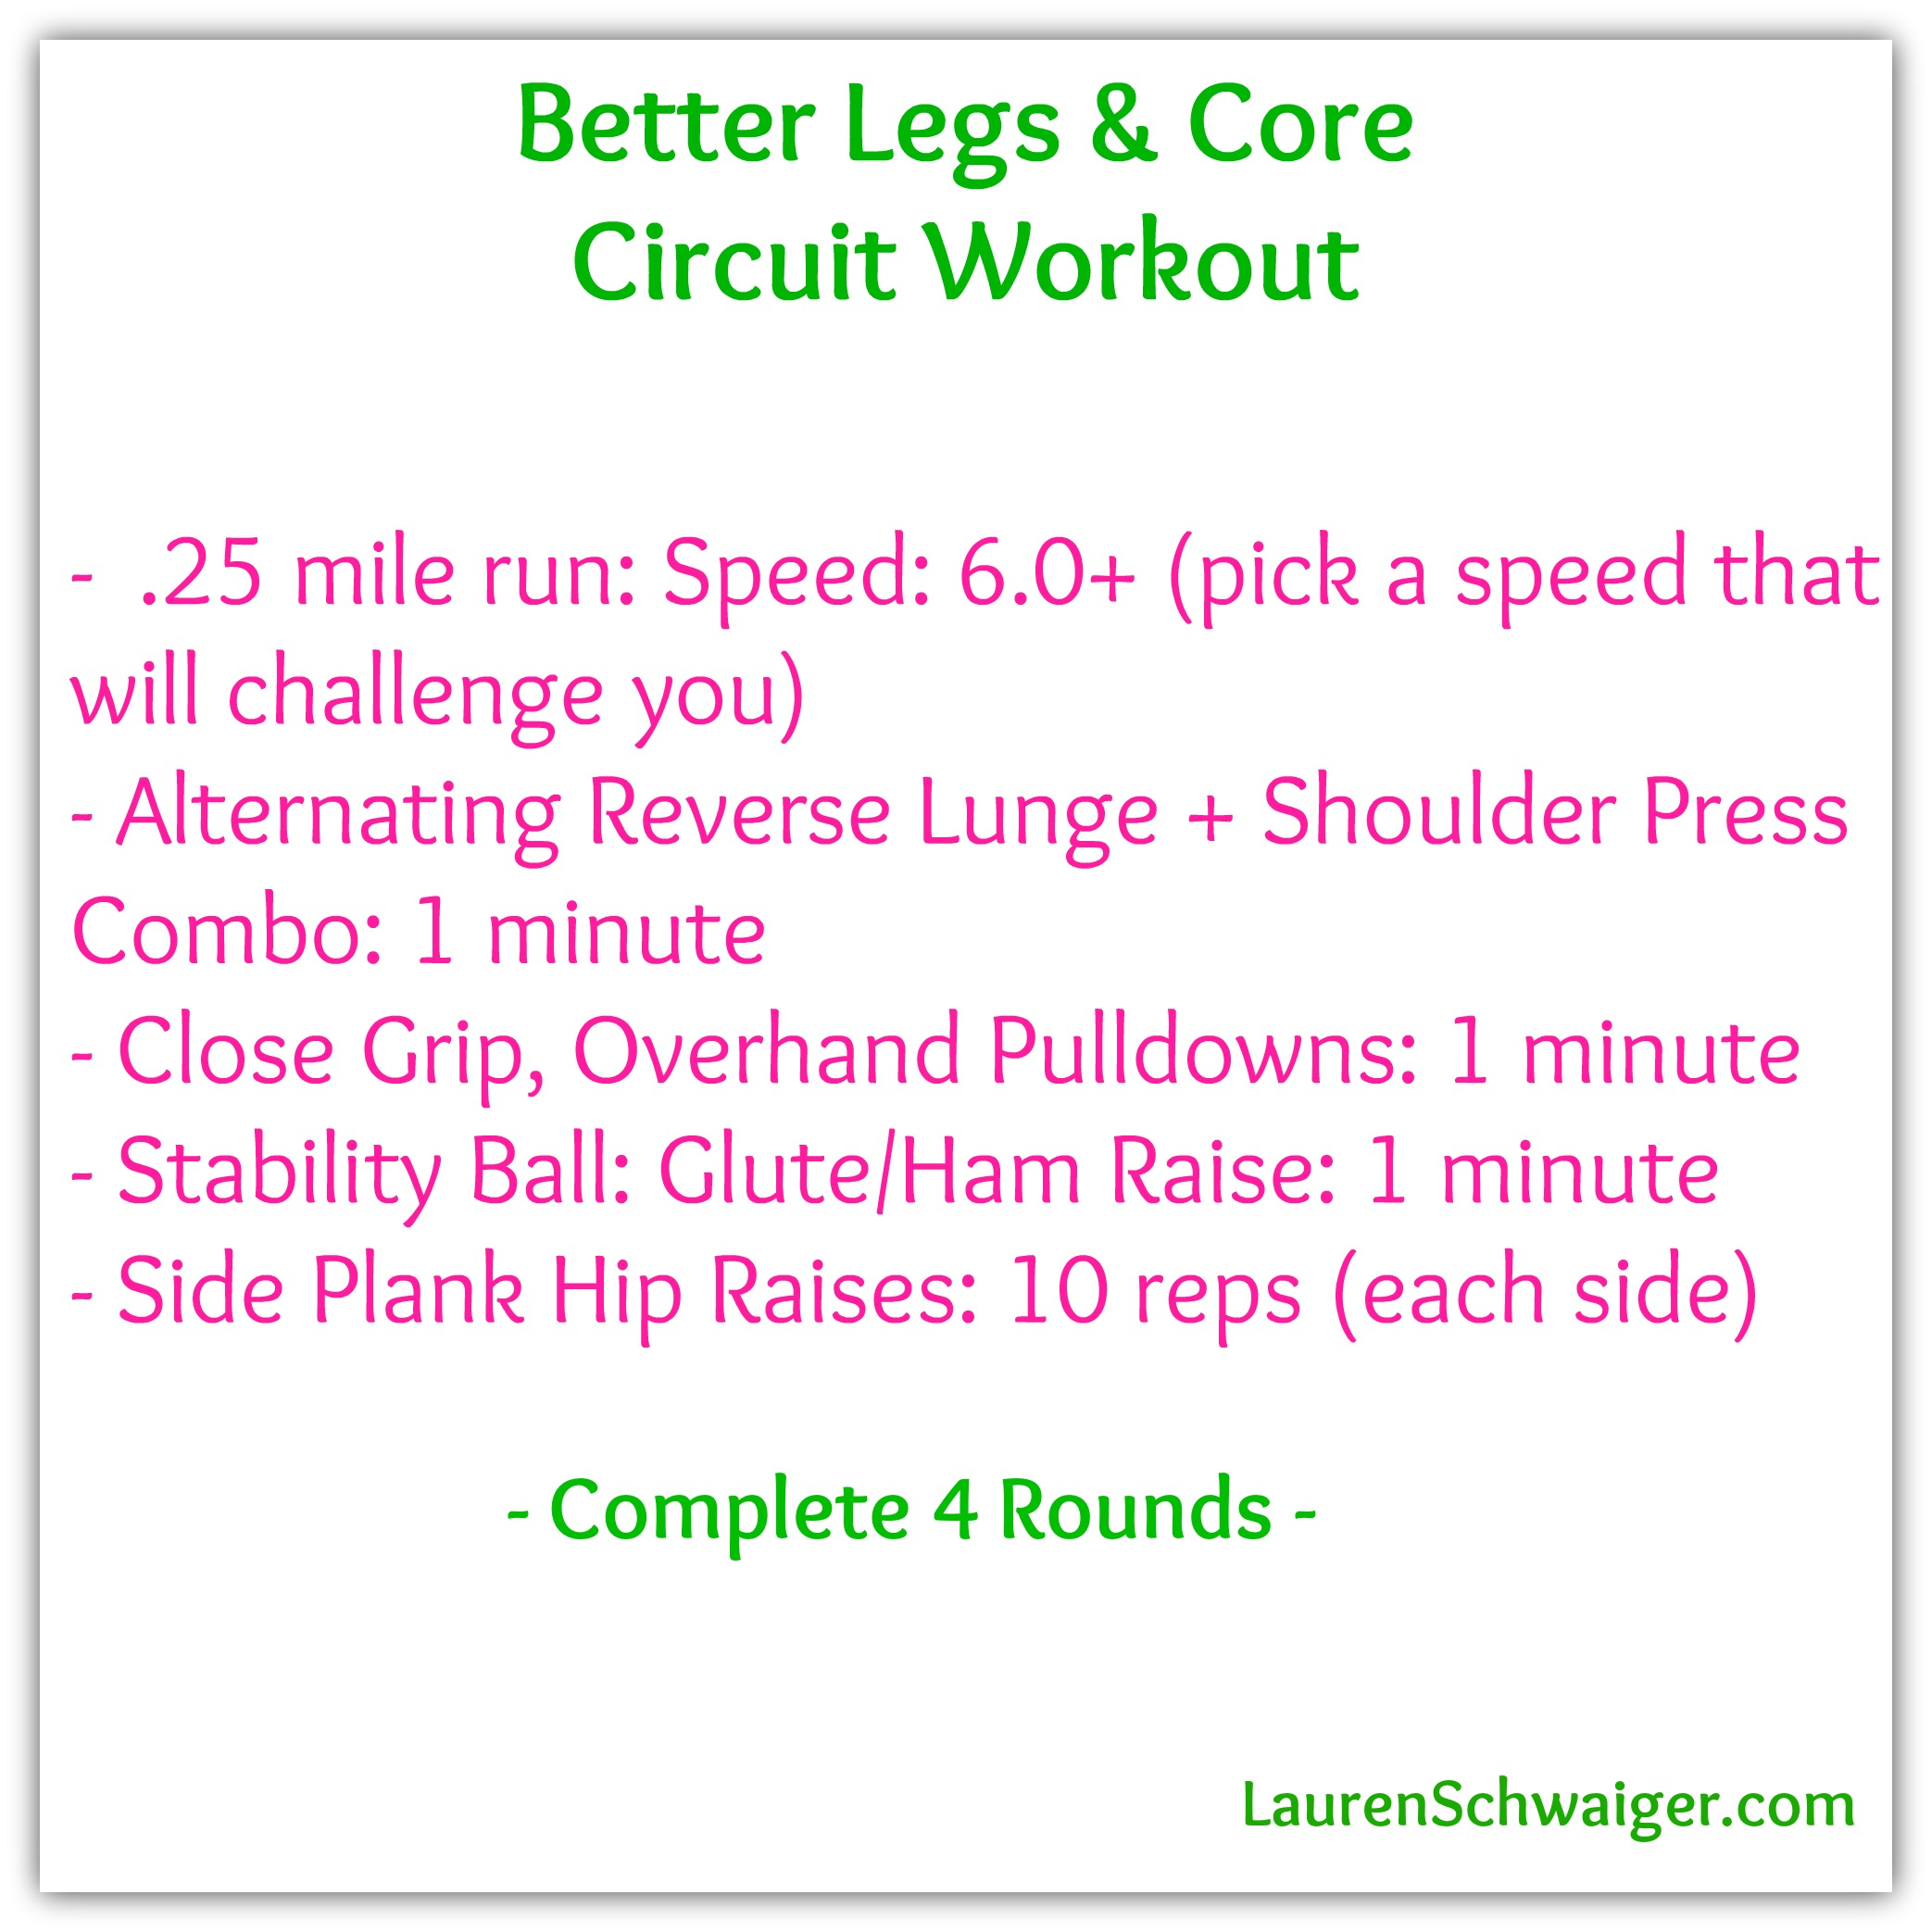 Better Legs & Core Circuit Workout - LaurenSchwaiger.com